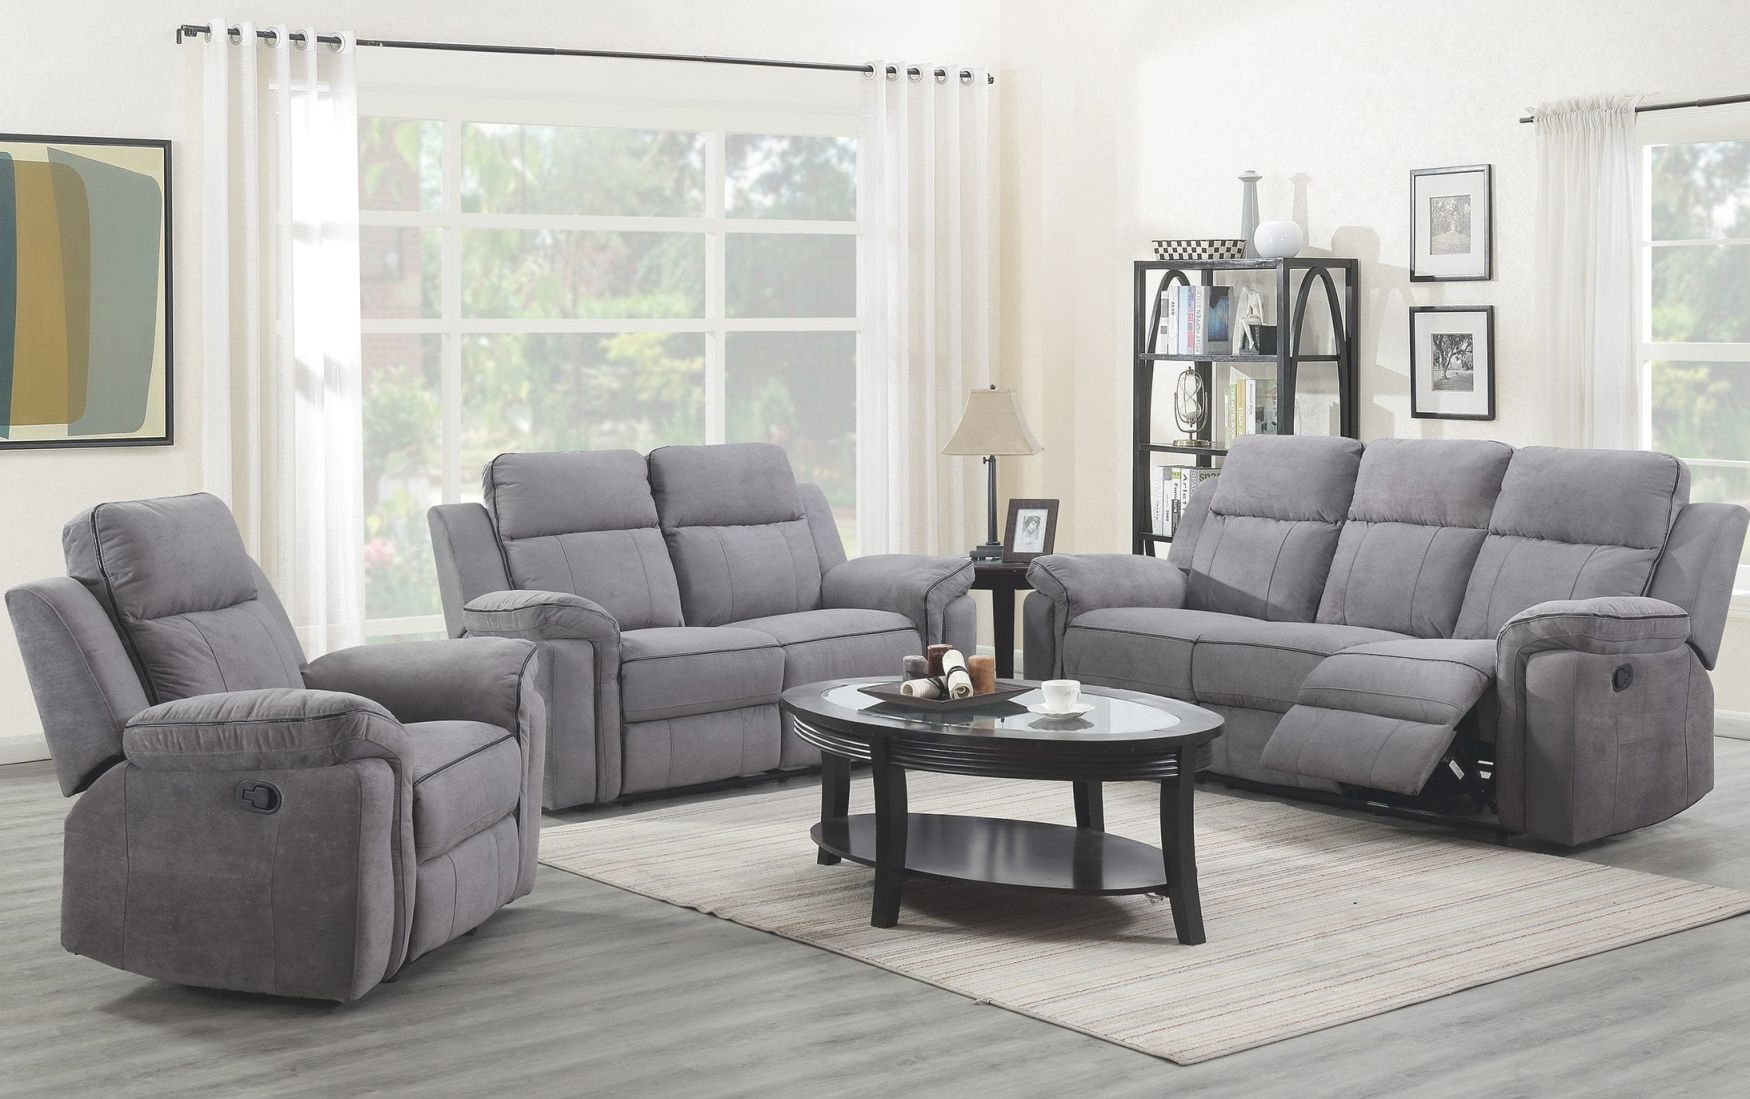 Jupiter Living Room - Reclining Sofa & Loveseat ( Jupiterlr) within Living Room Furnitures